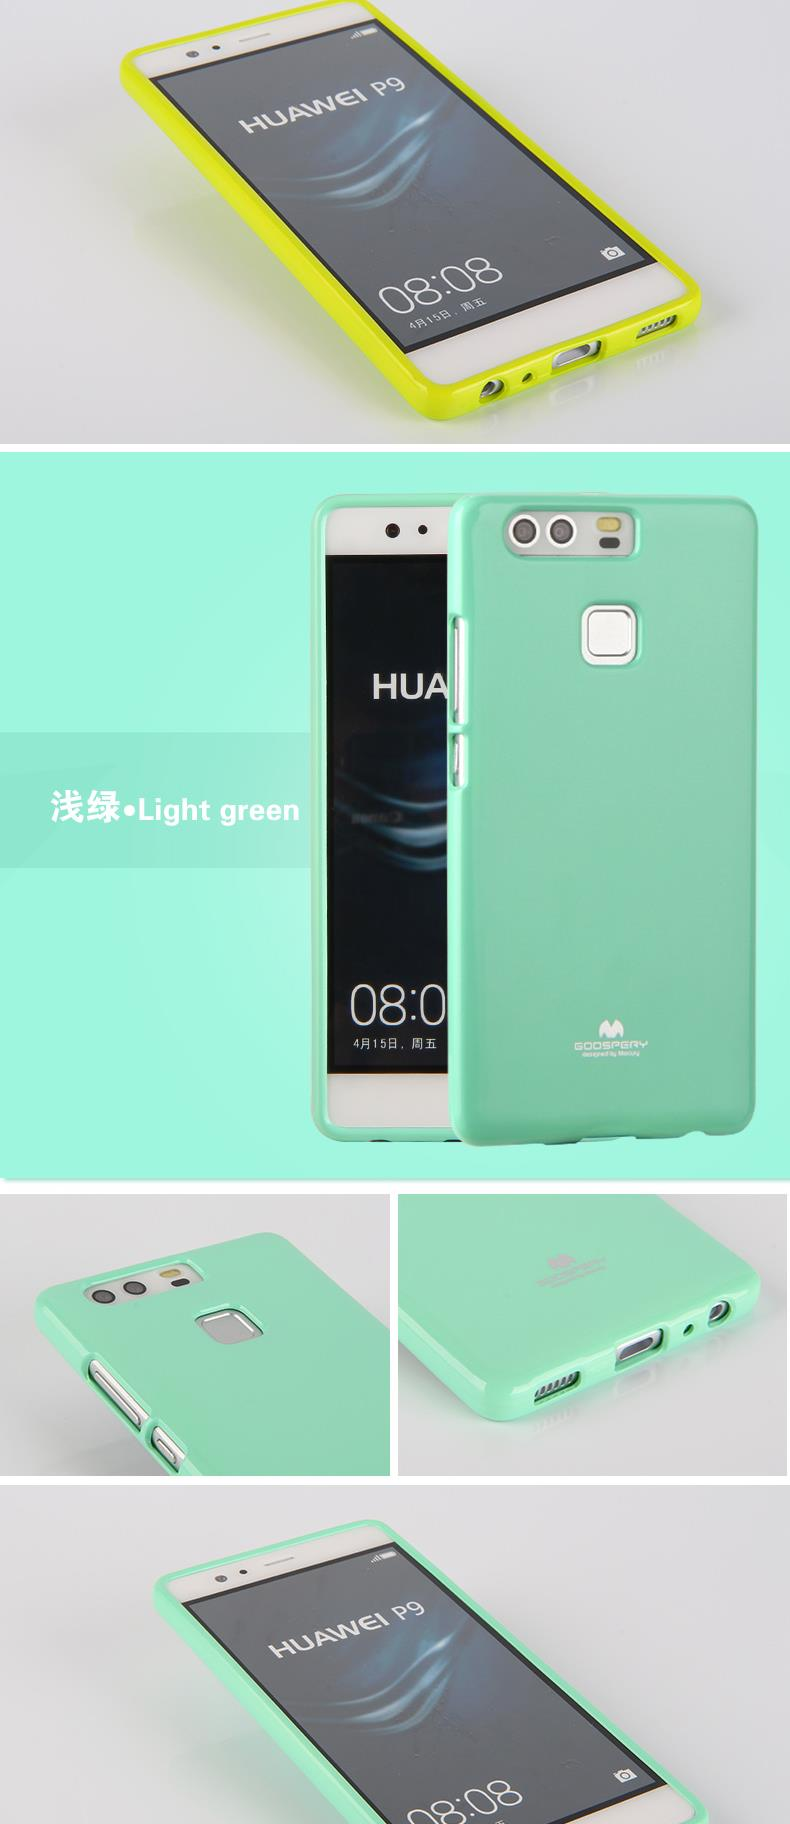 For Huawei P9 Pearl Tpu Case Mercury Goospery Jelly Bling Iphone 8 Plus Soft Feeling With Hole White Aeproduct